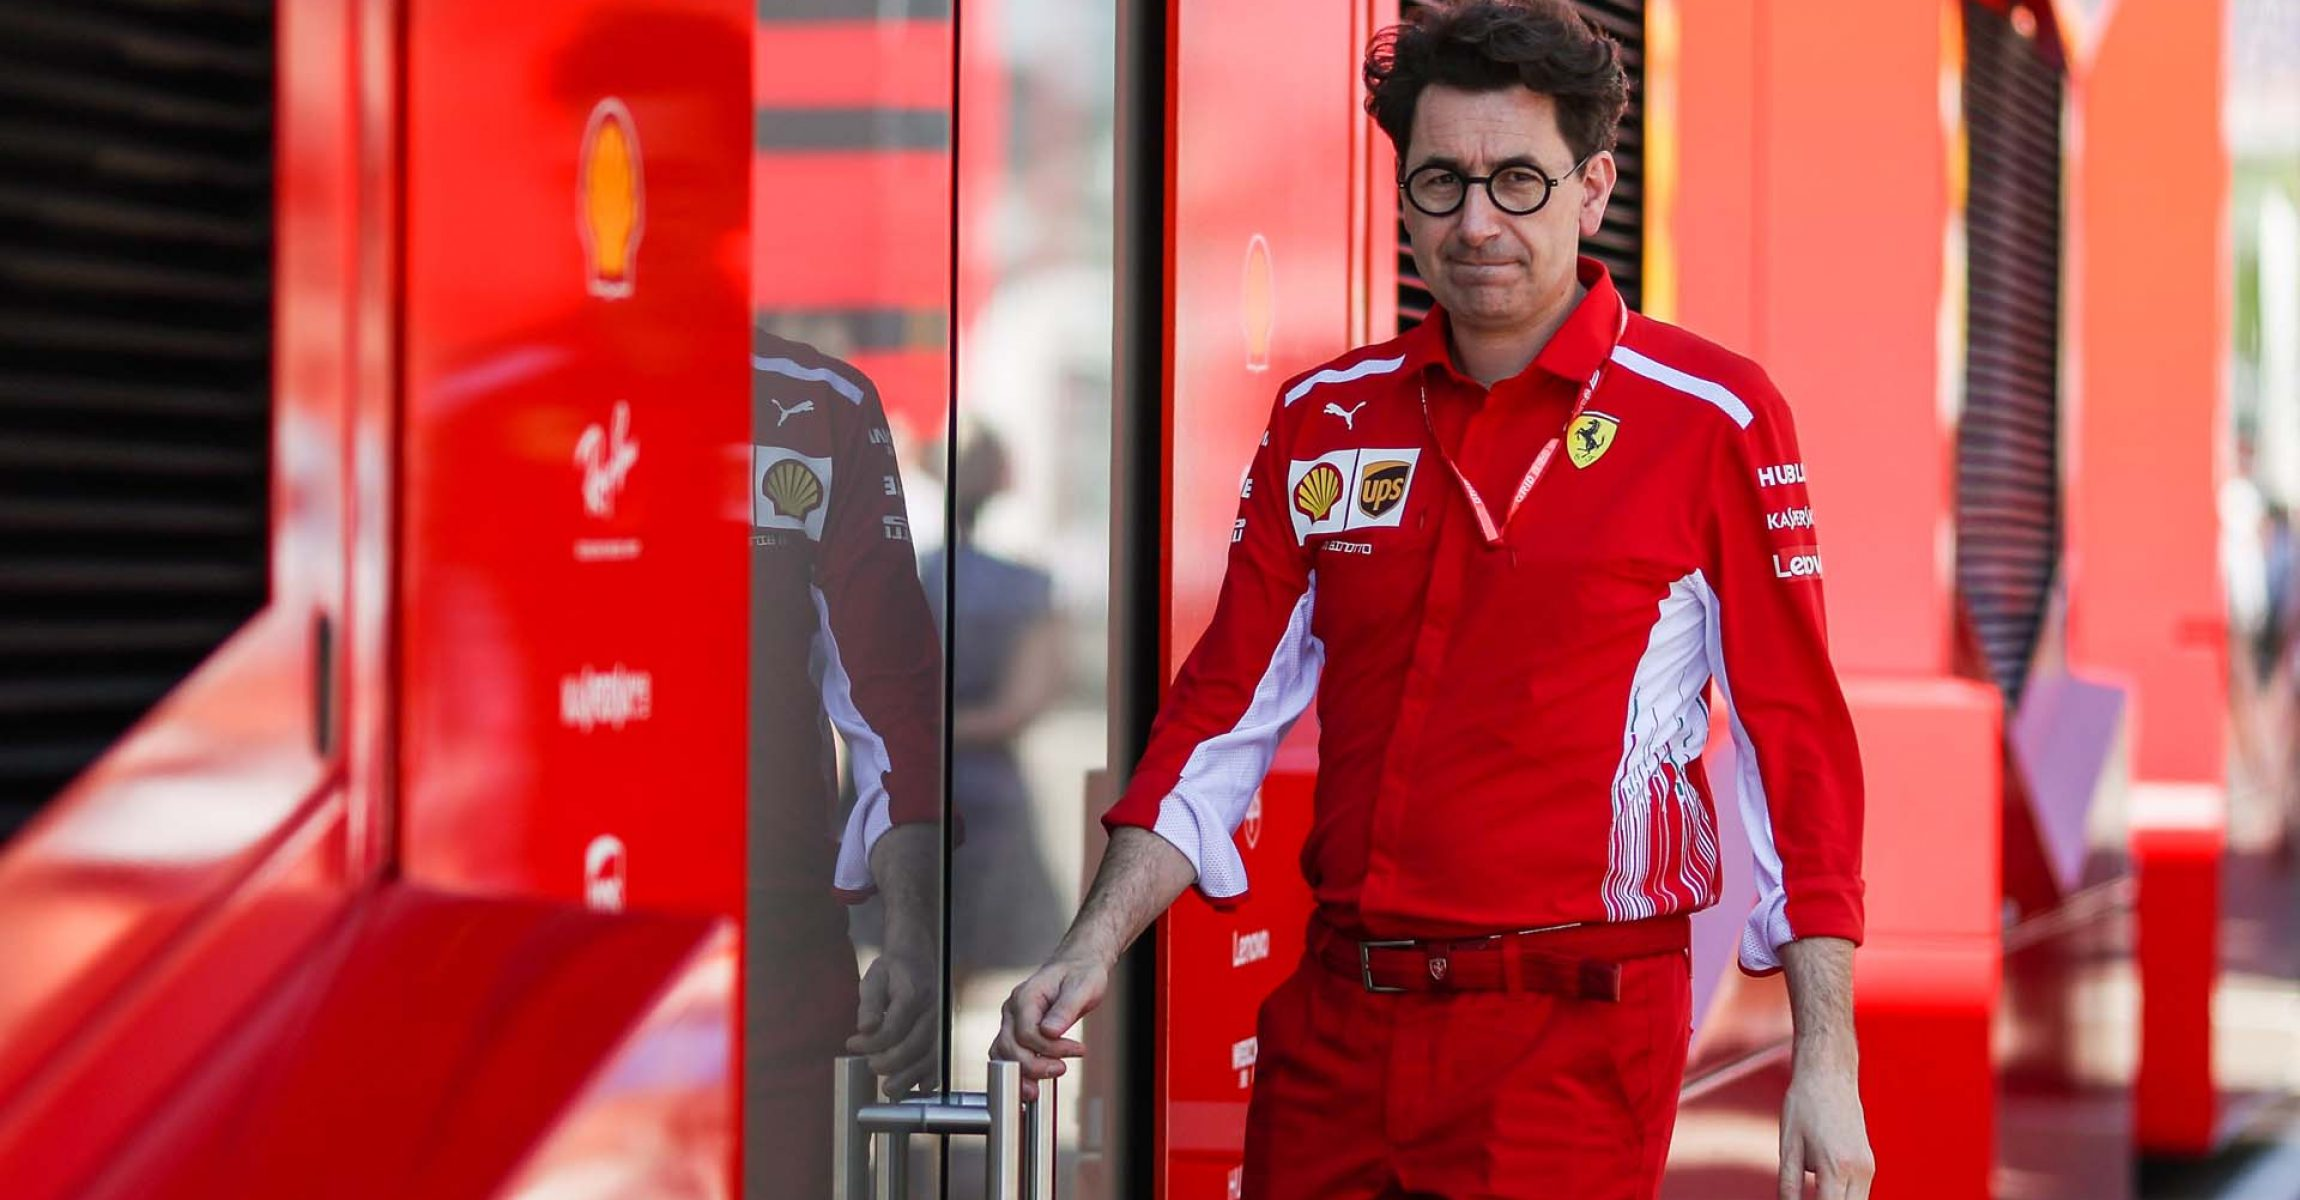 SPIELBERG,AUSTRIA,29.JUN.19 - MOTORSPORTS, FORMULA 1 - Grand Prix of Austria, Red Bull Ring, qualification. Image shows executive director Mattia Binotto (Ferrari). Photo: GEPA pictures/ Daniel Goetzhaber - For editorial use only. Image is free of charge.